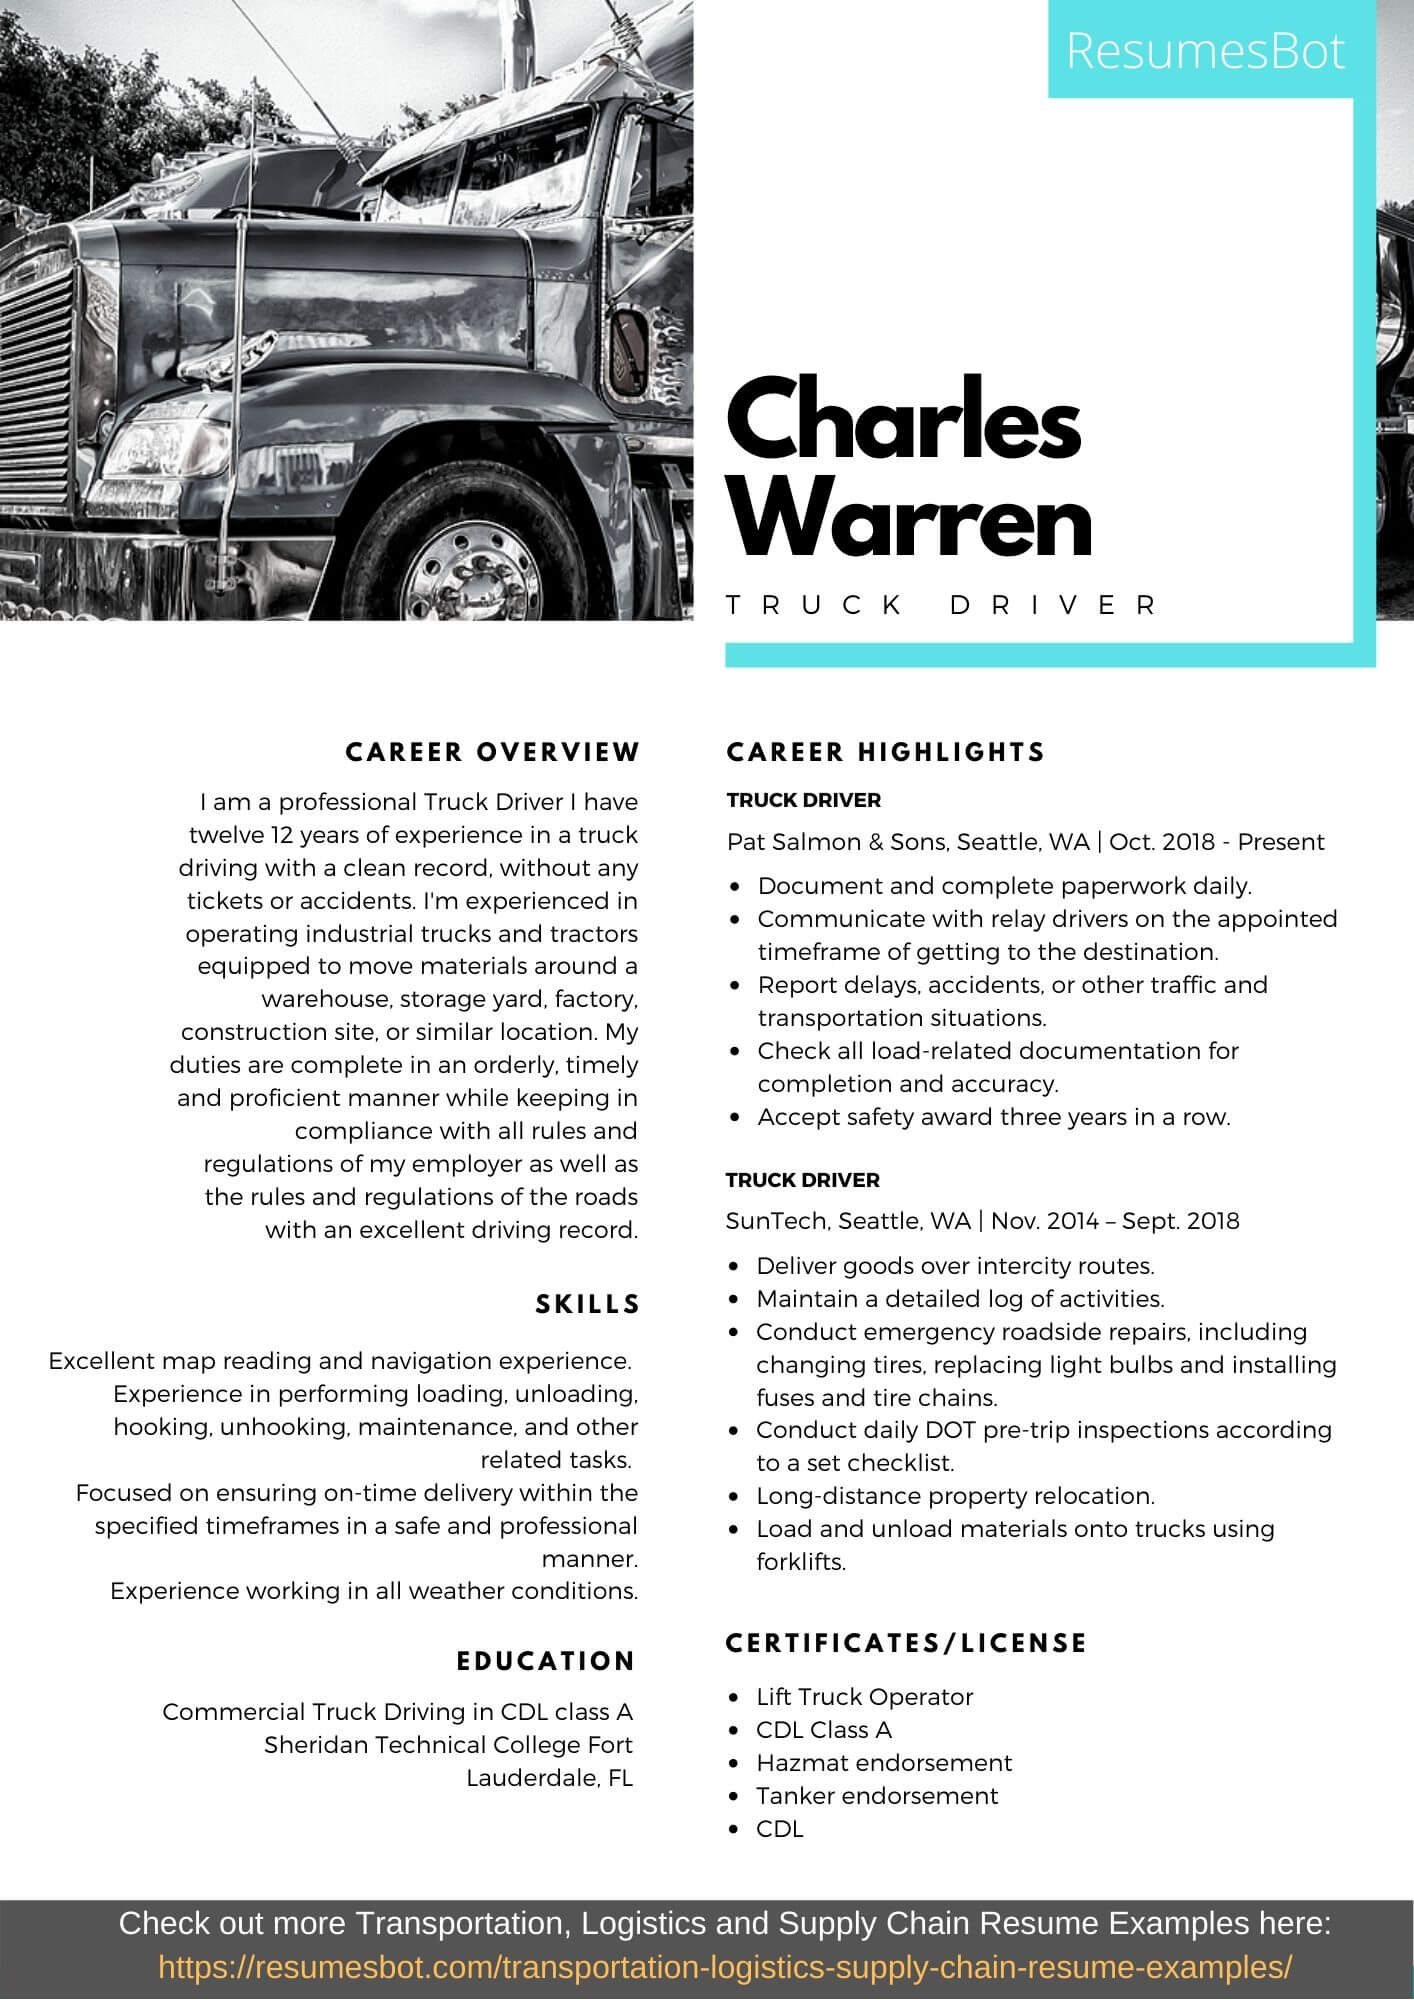 truck driver resume samples and tips pdf resumes bot objective sample example lsu Resume Driver Resume Objective Sample